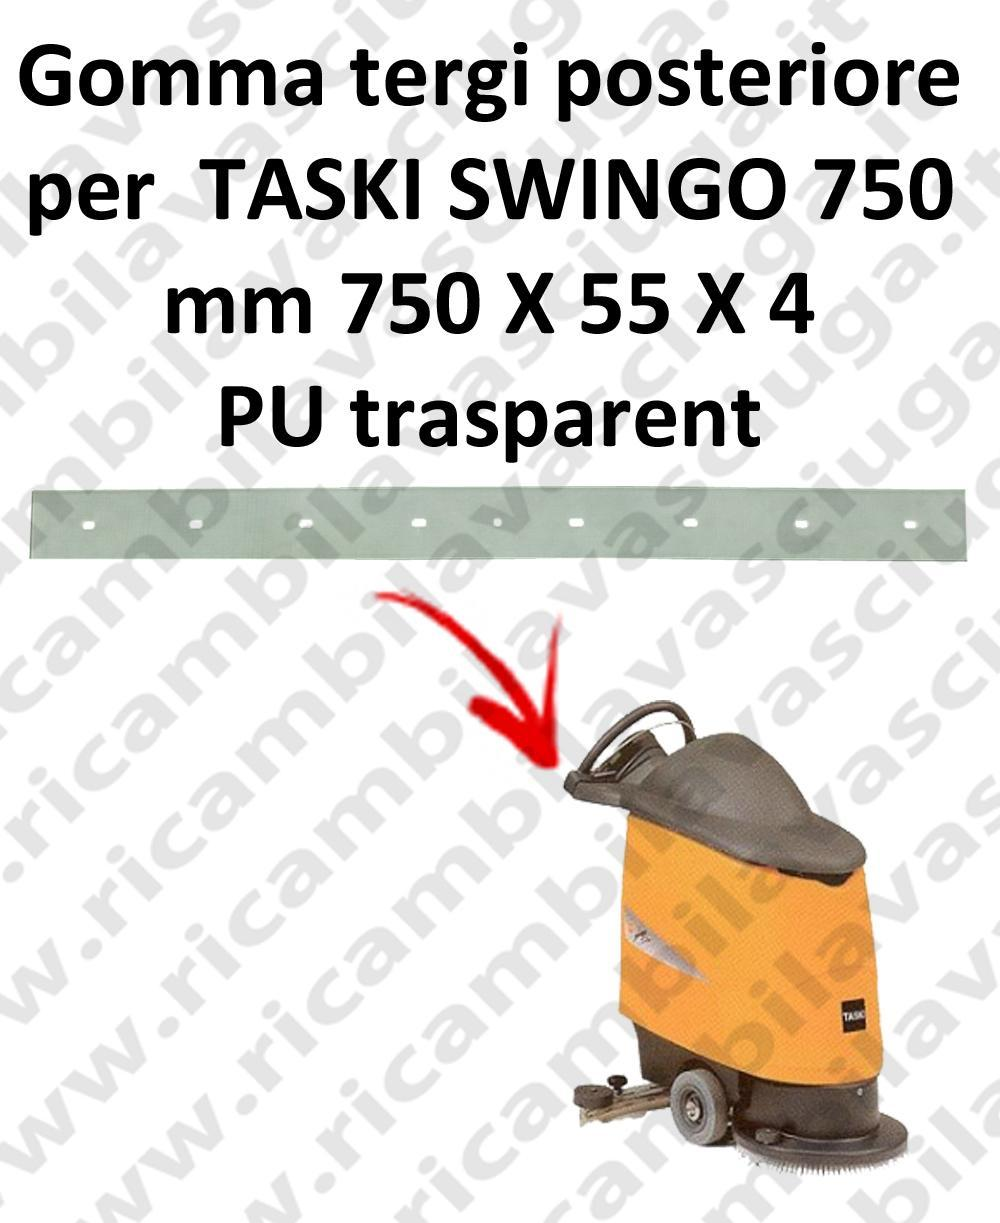 SWINGO 750  Back Squeegee rubber for TASKI accessories, reaplacement, spare parts,o scrubber dryer squeegee